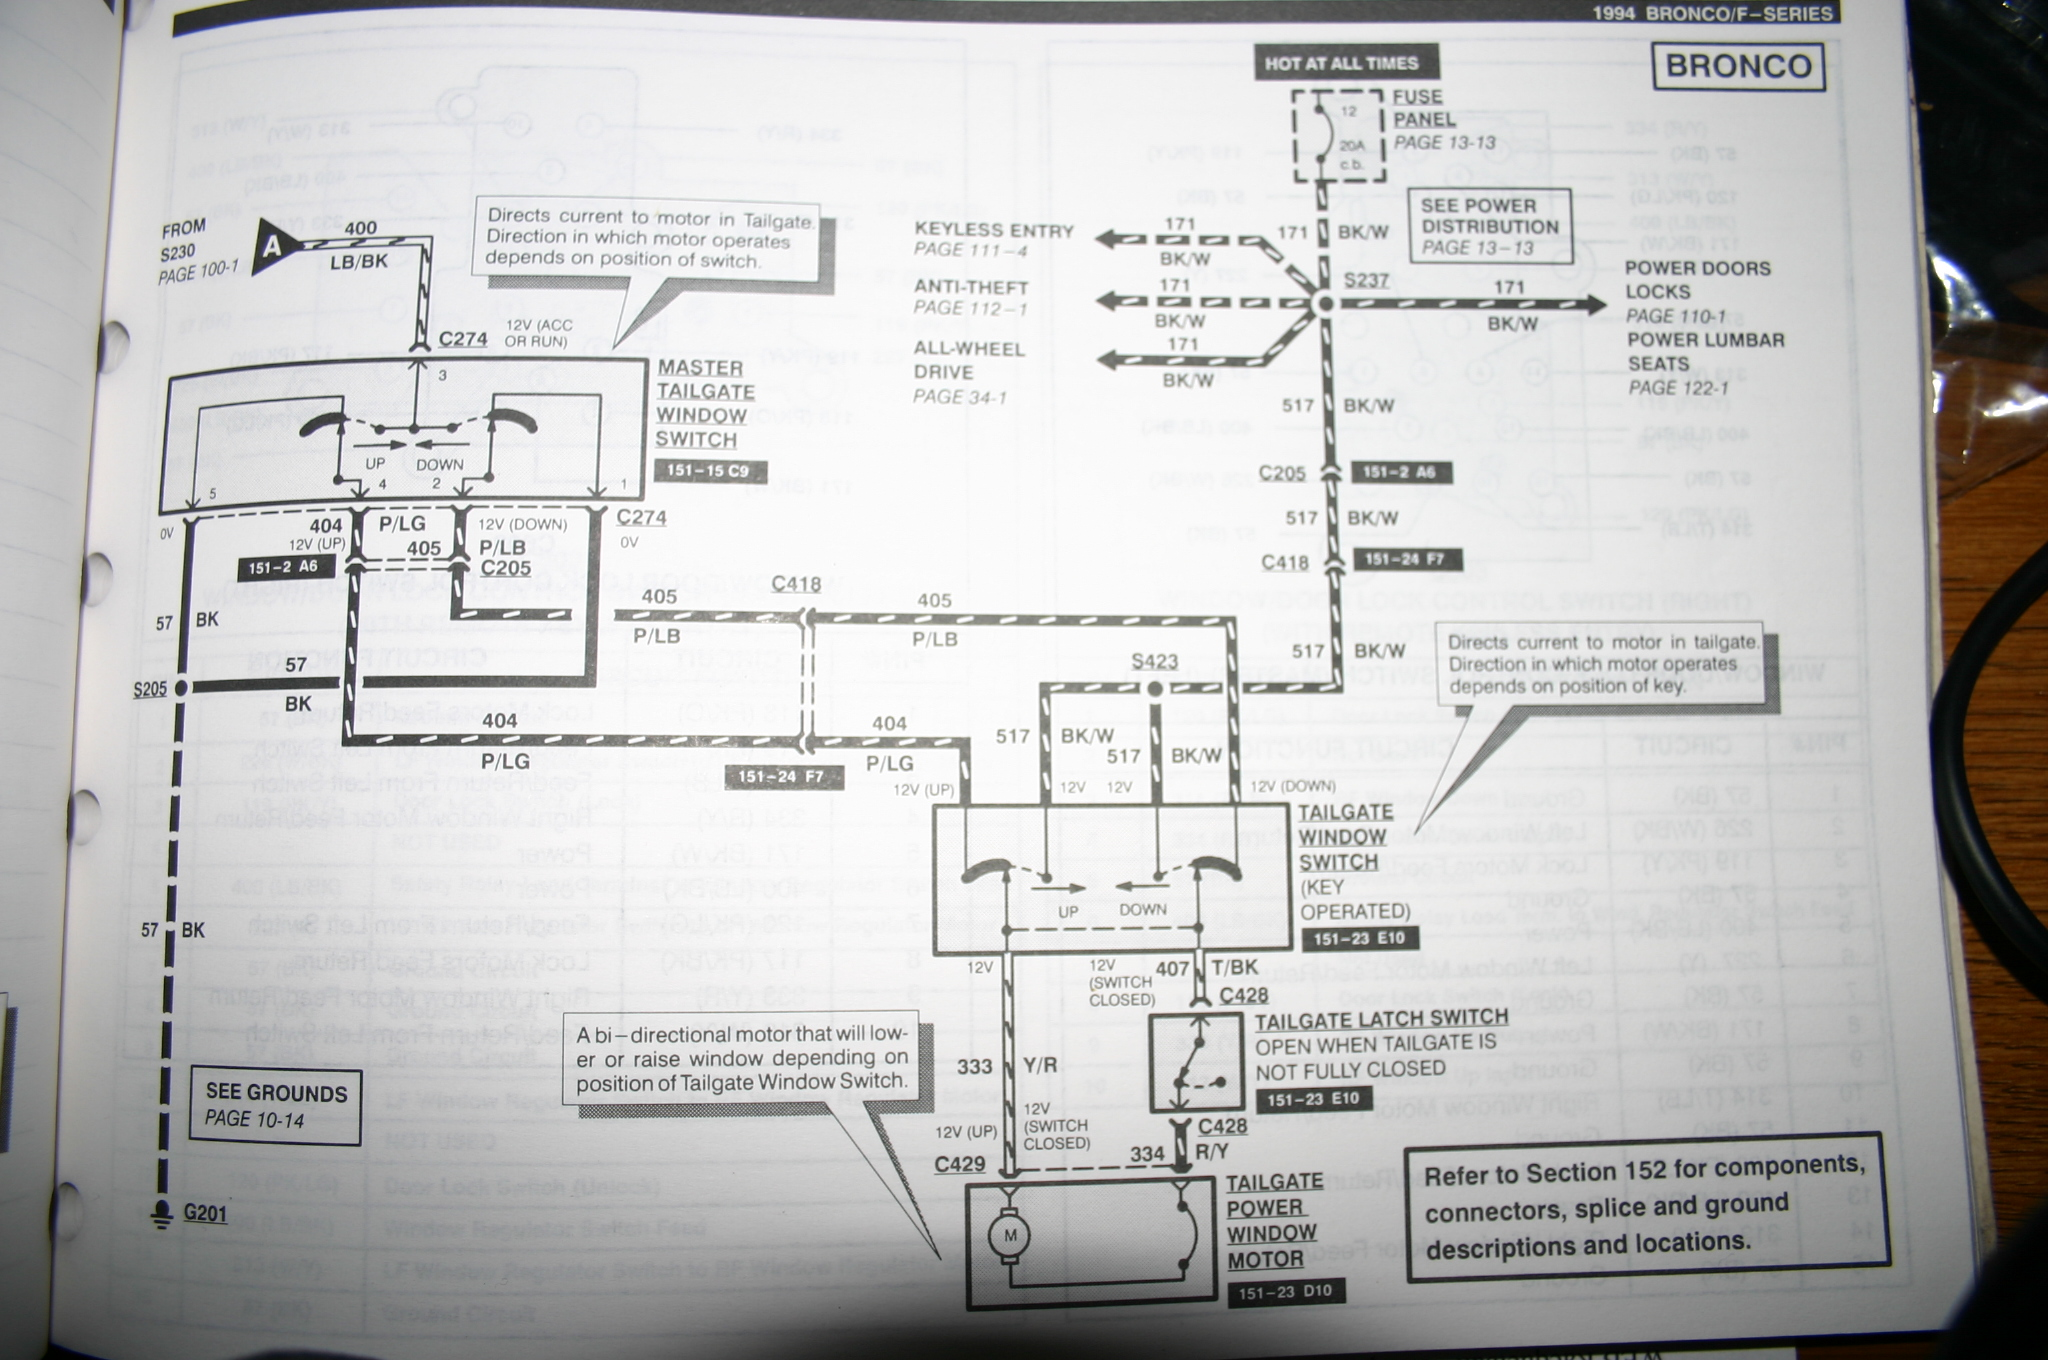 1990 ford bronco wiring diagram honeywell programmable thermostat 79 schematic free engine image for user